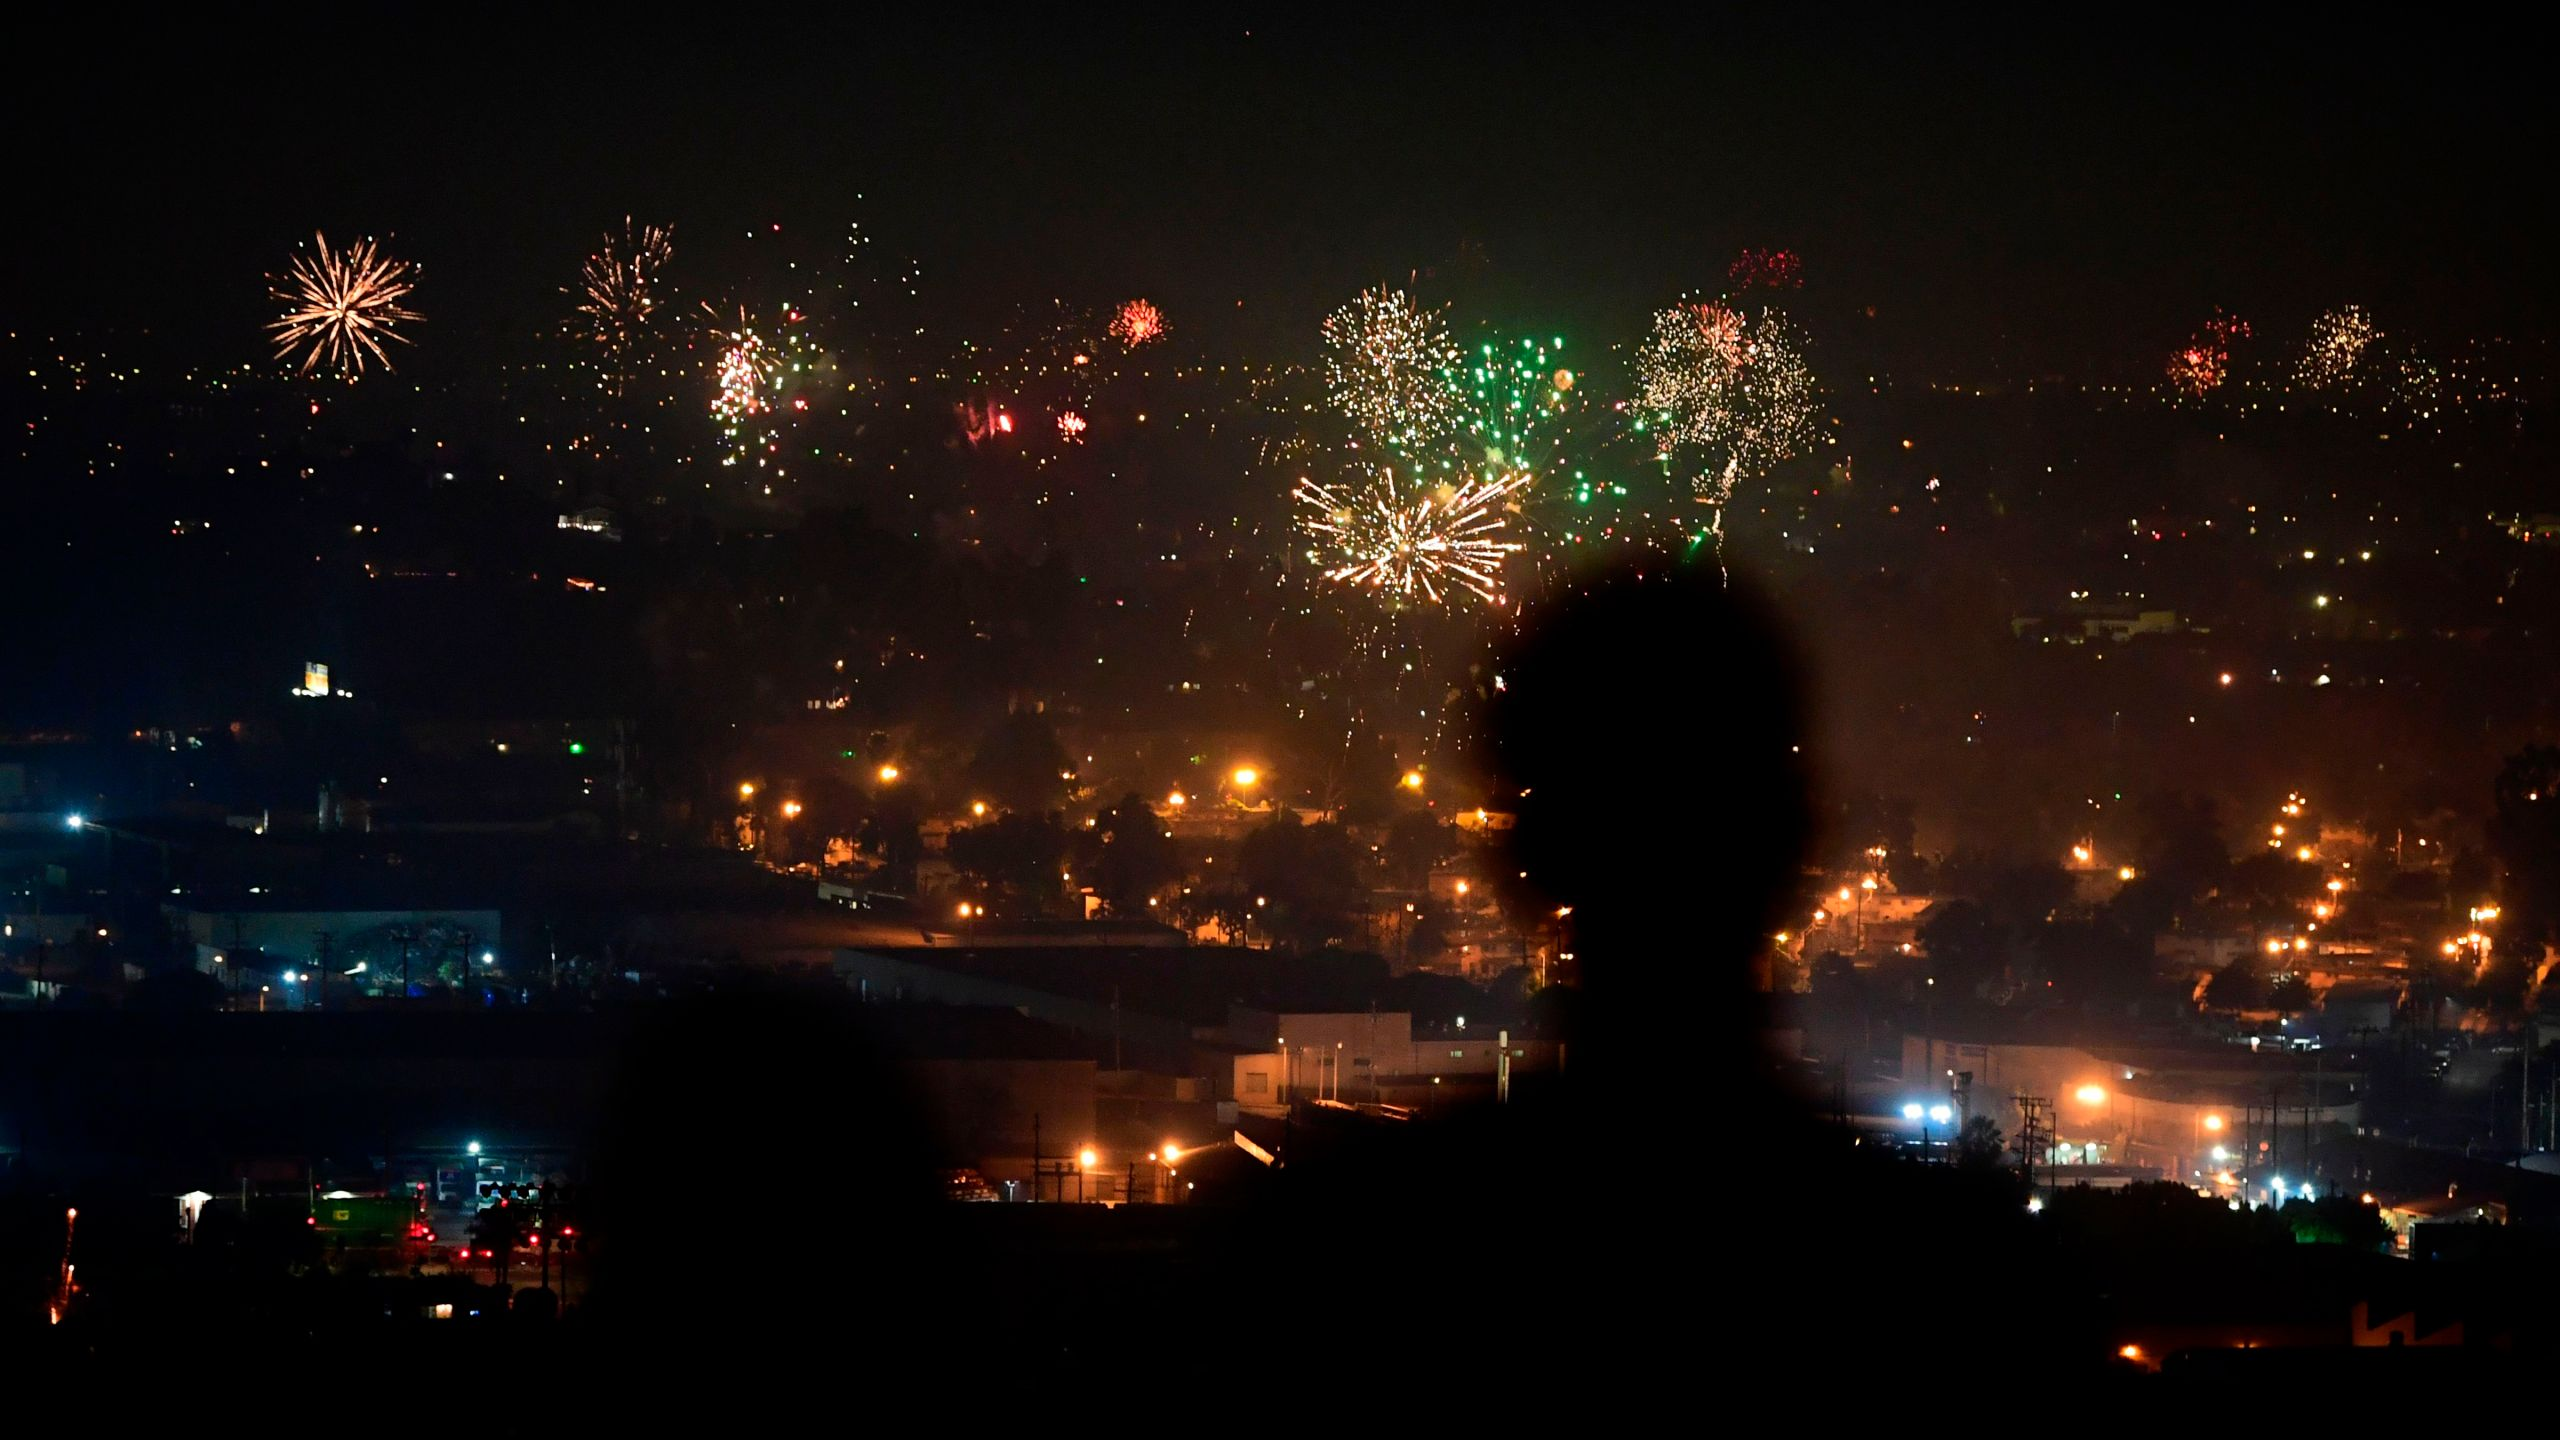 People watch fireworks burst over Los Angeles on July 4, 2020. (Frederic J. Brown / AFP / Getty Images)